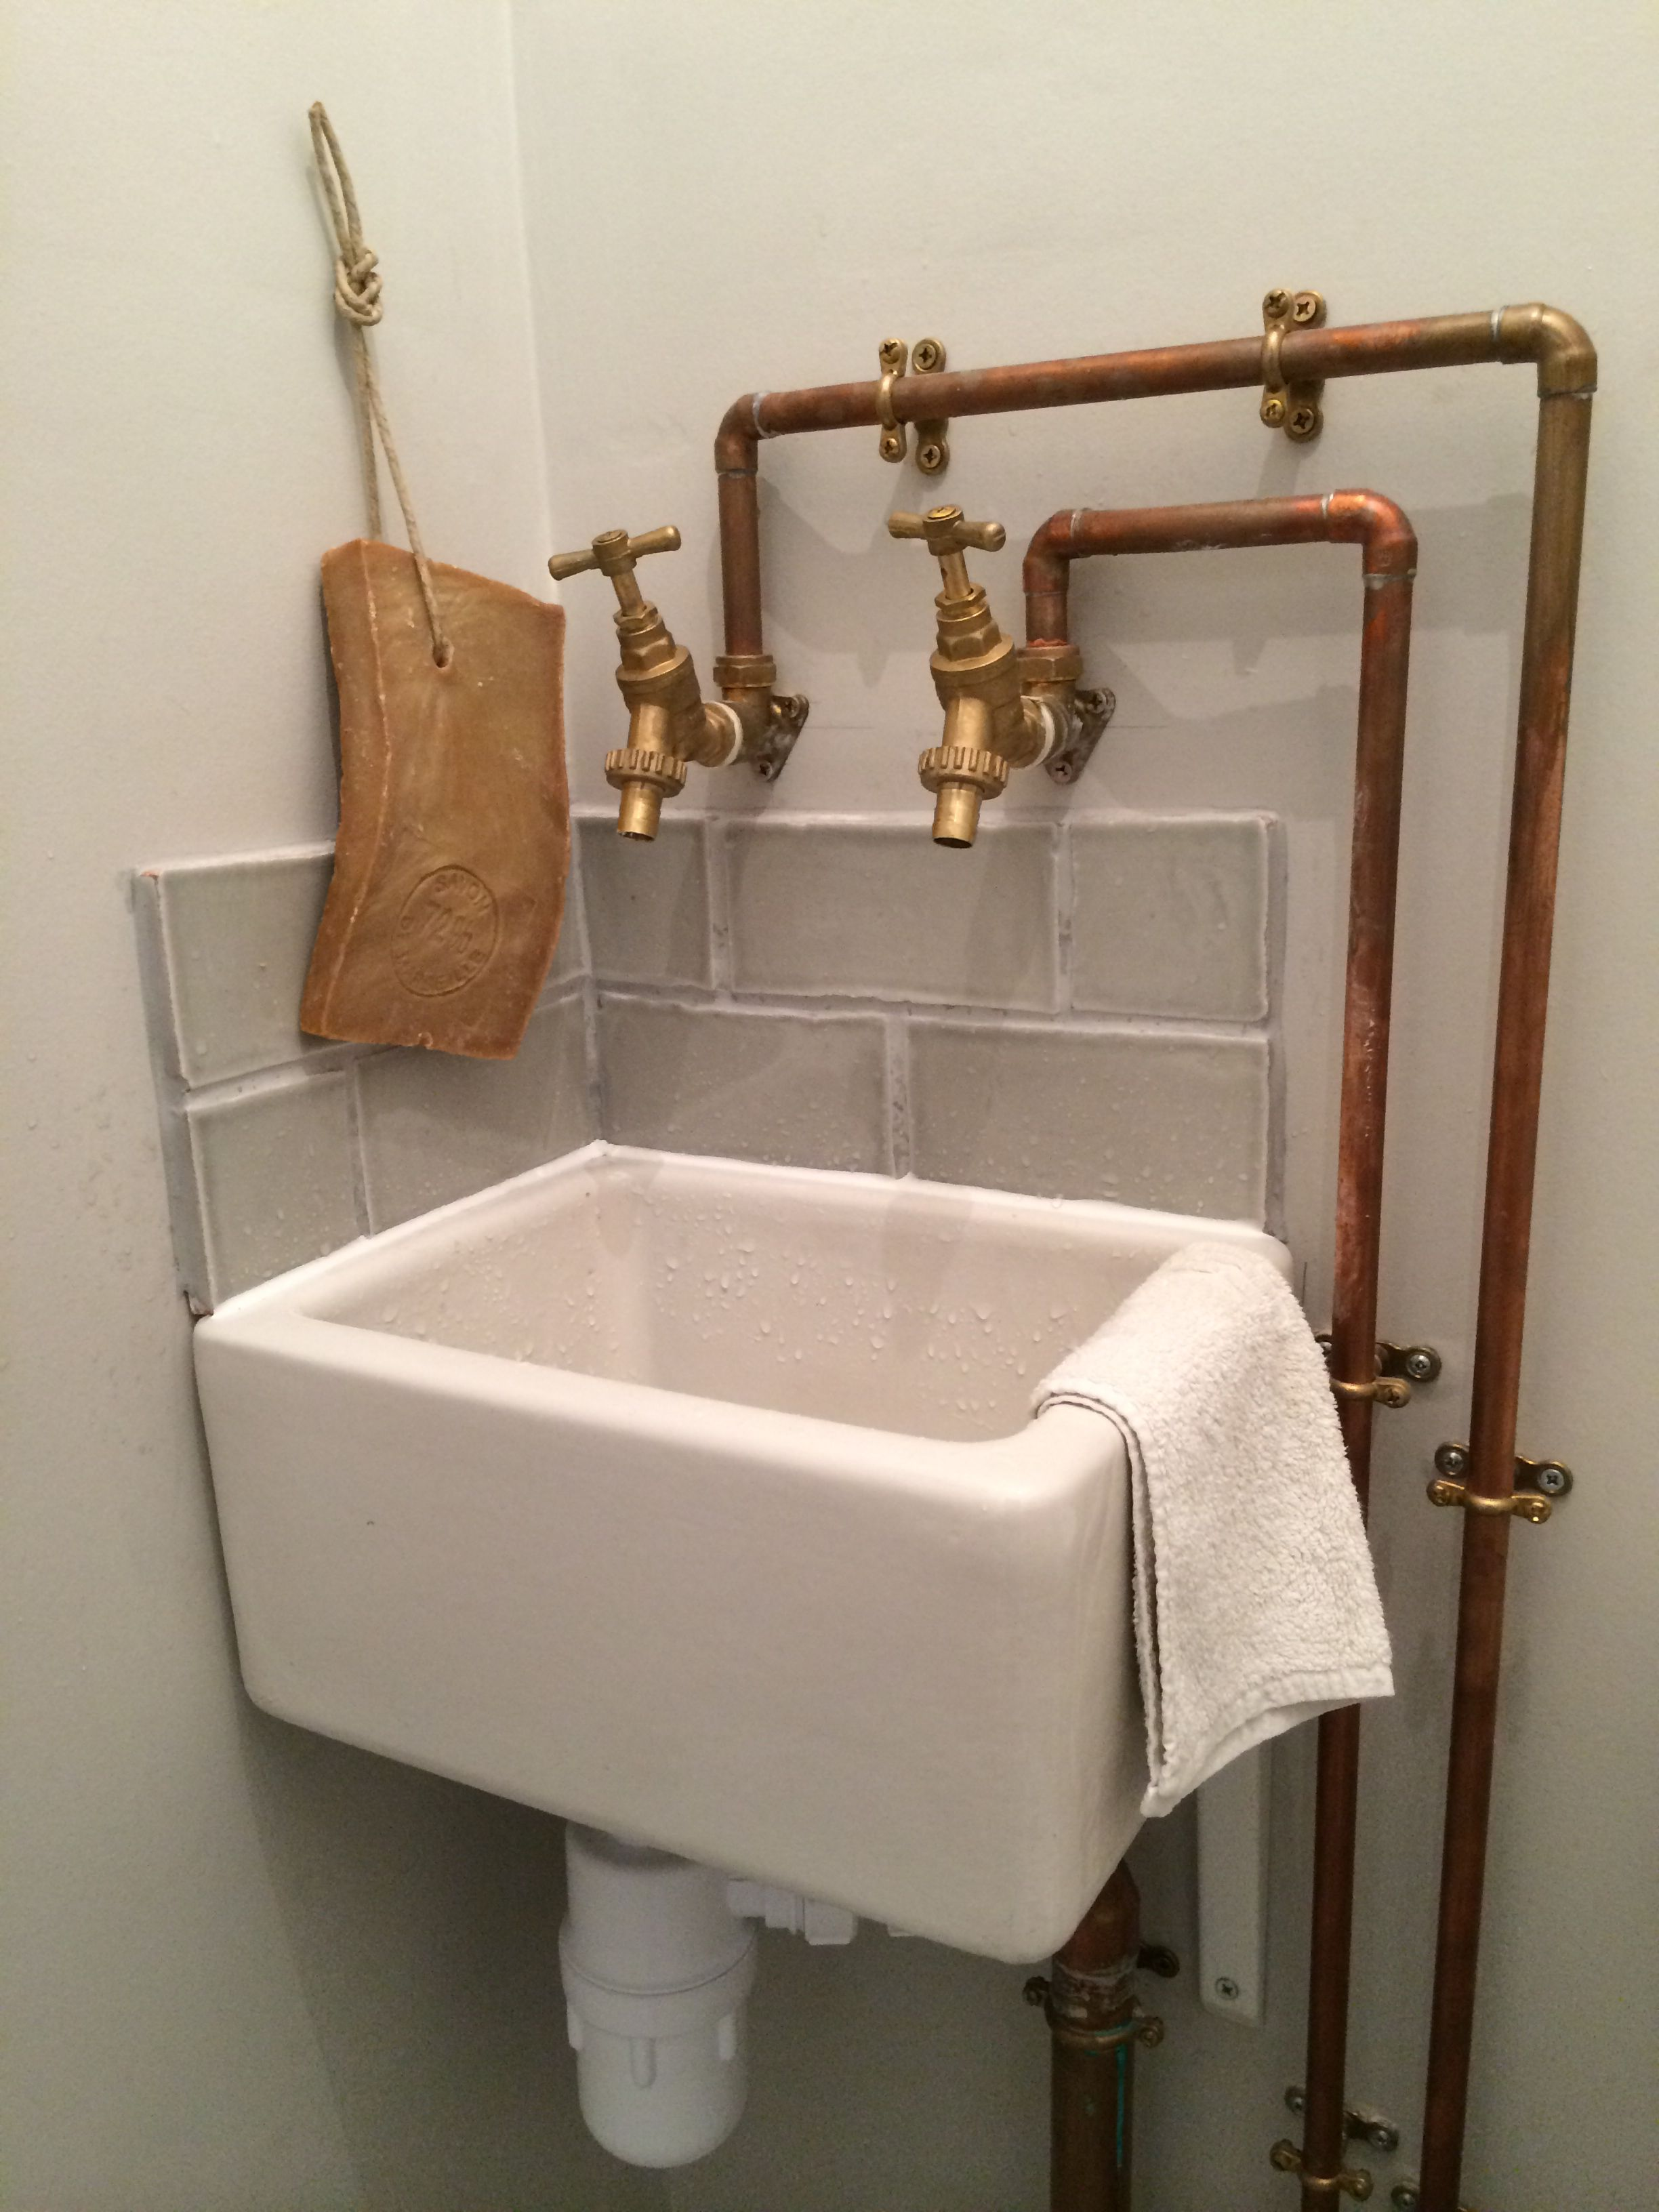 bunnings bathroom sinks copper piping and baby belfast sink in cloakroom maybe a 12207